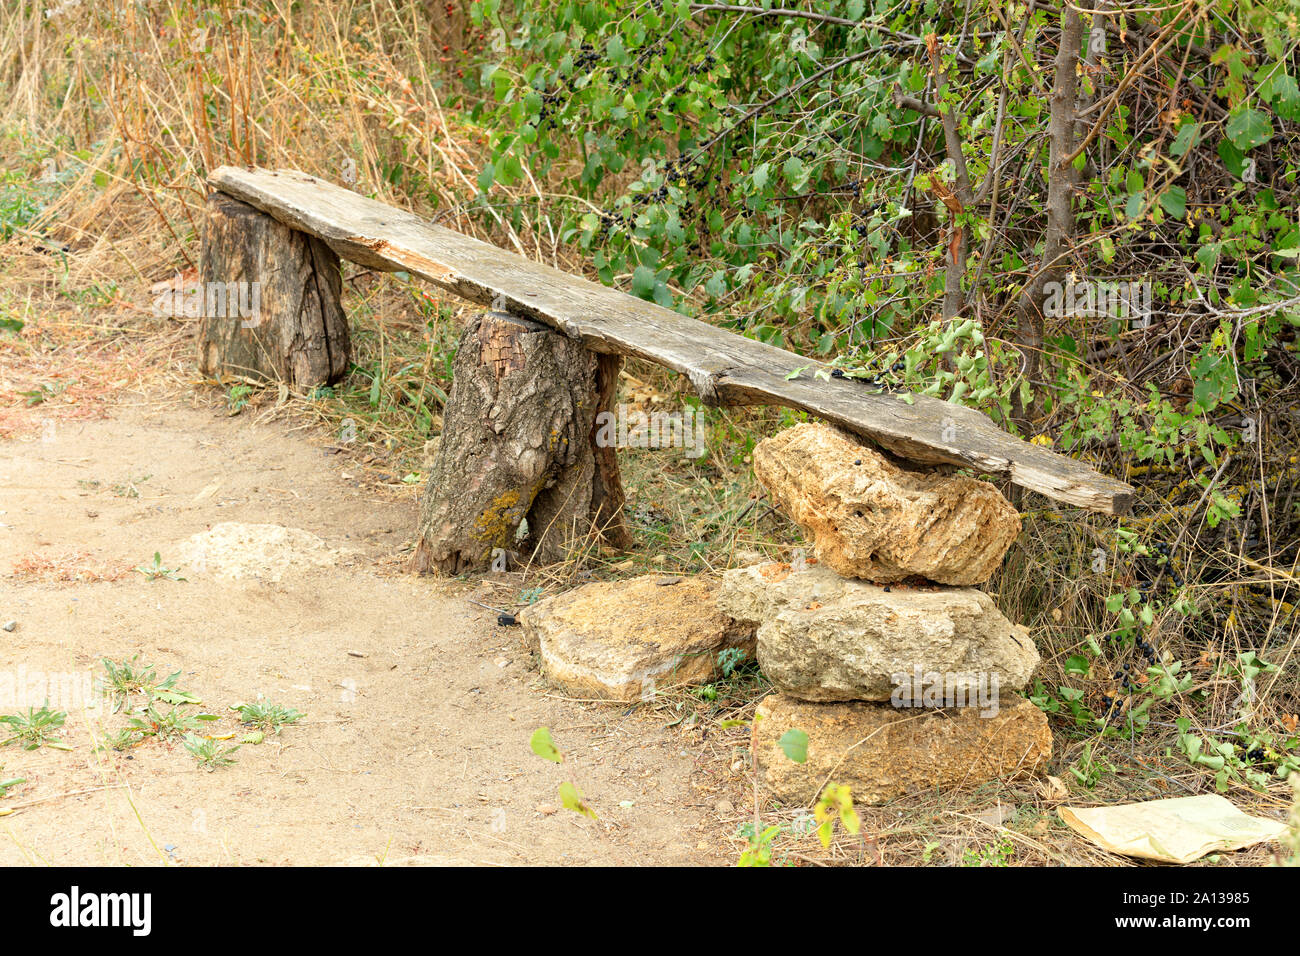 A very old wooden bench, green bushes, trees, dry grass, in the Ukrainian rock garden. Stock Photo